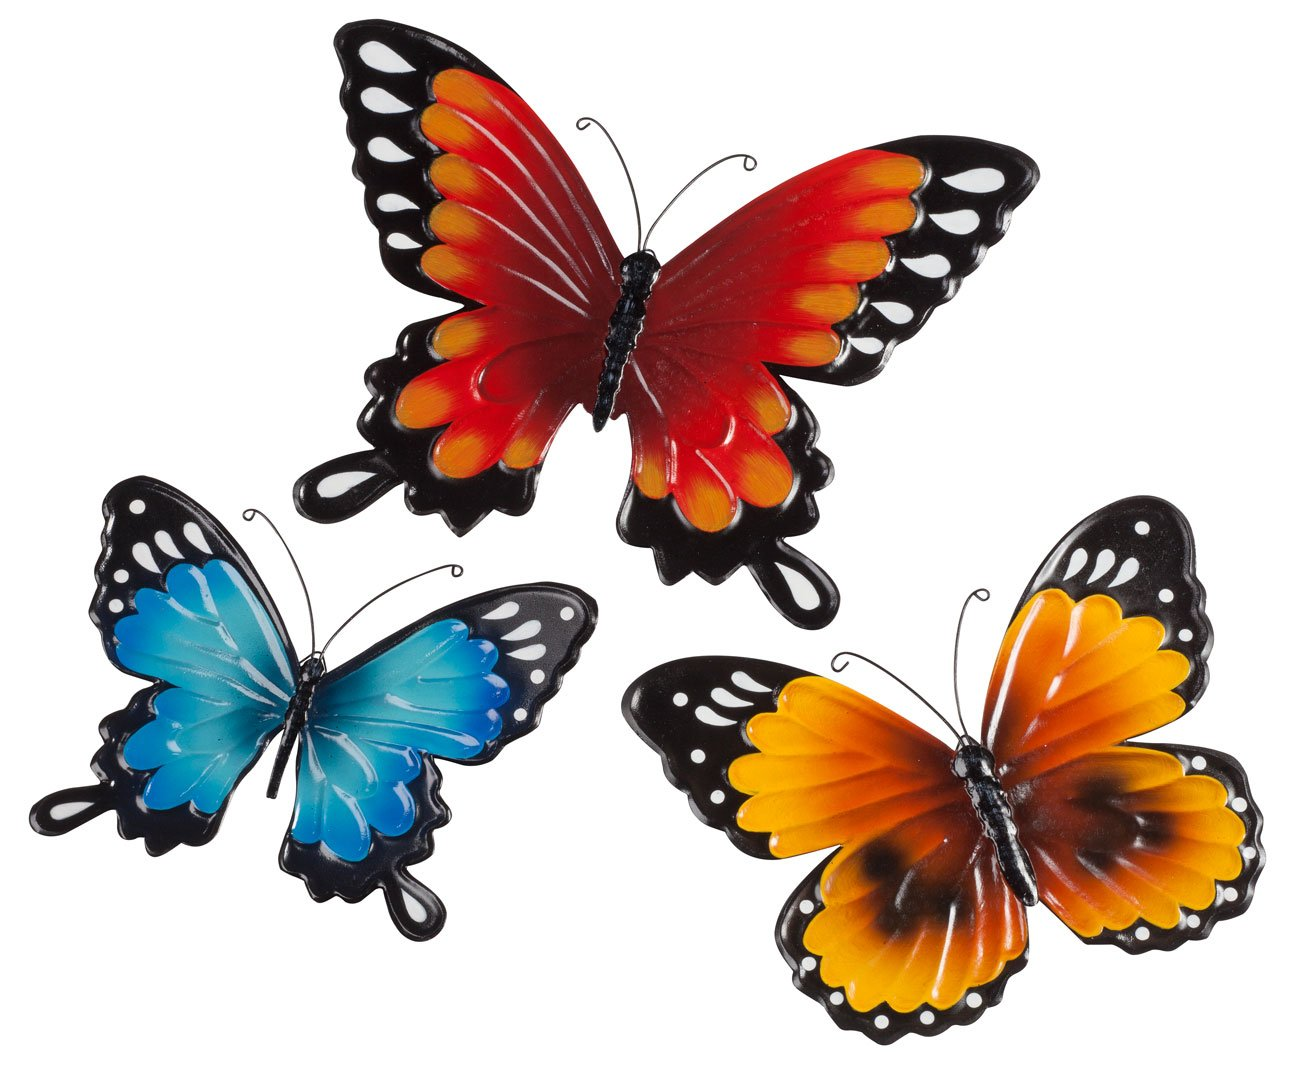 new metal wall decor butterfly sculpture 29x15 baby. Black Bedroom Furniture Sets. Home Design Ideas